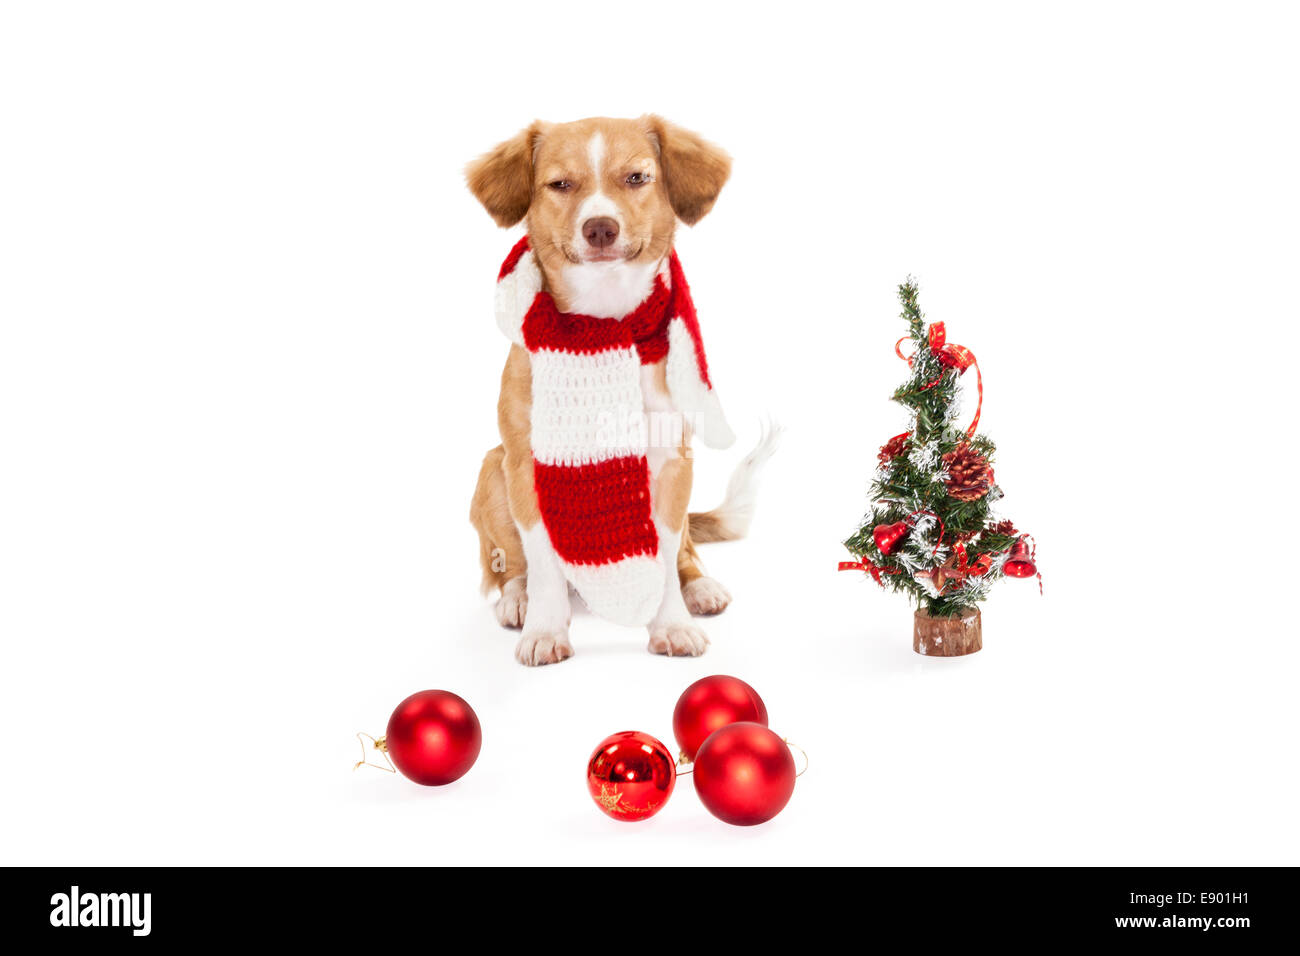 Cute dog with christmas tree and baubles over white background - Stock Image